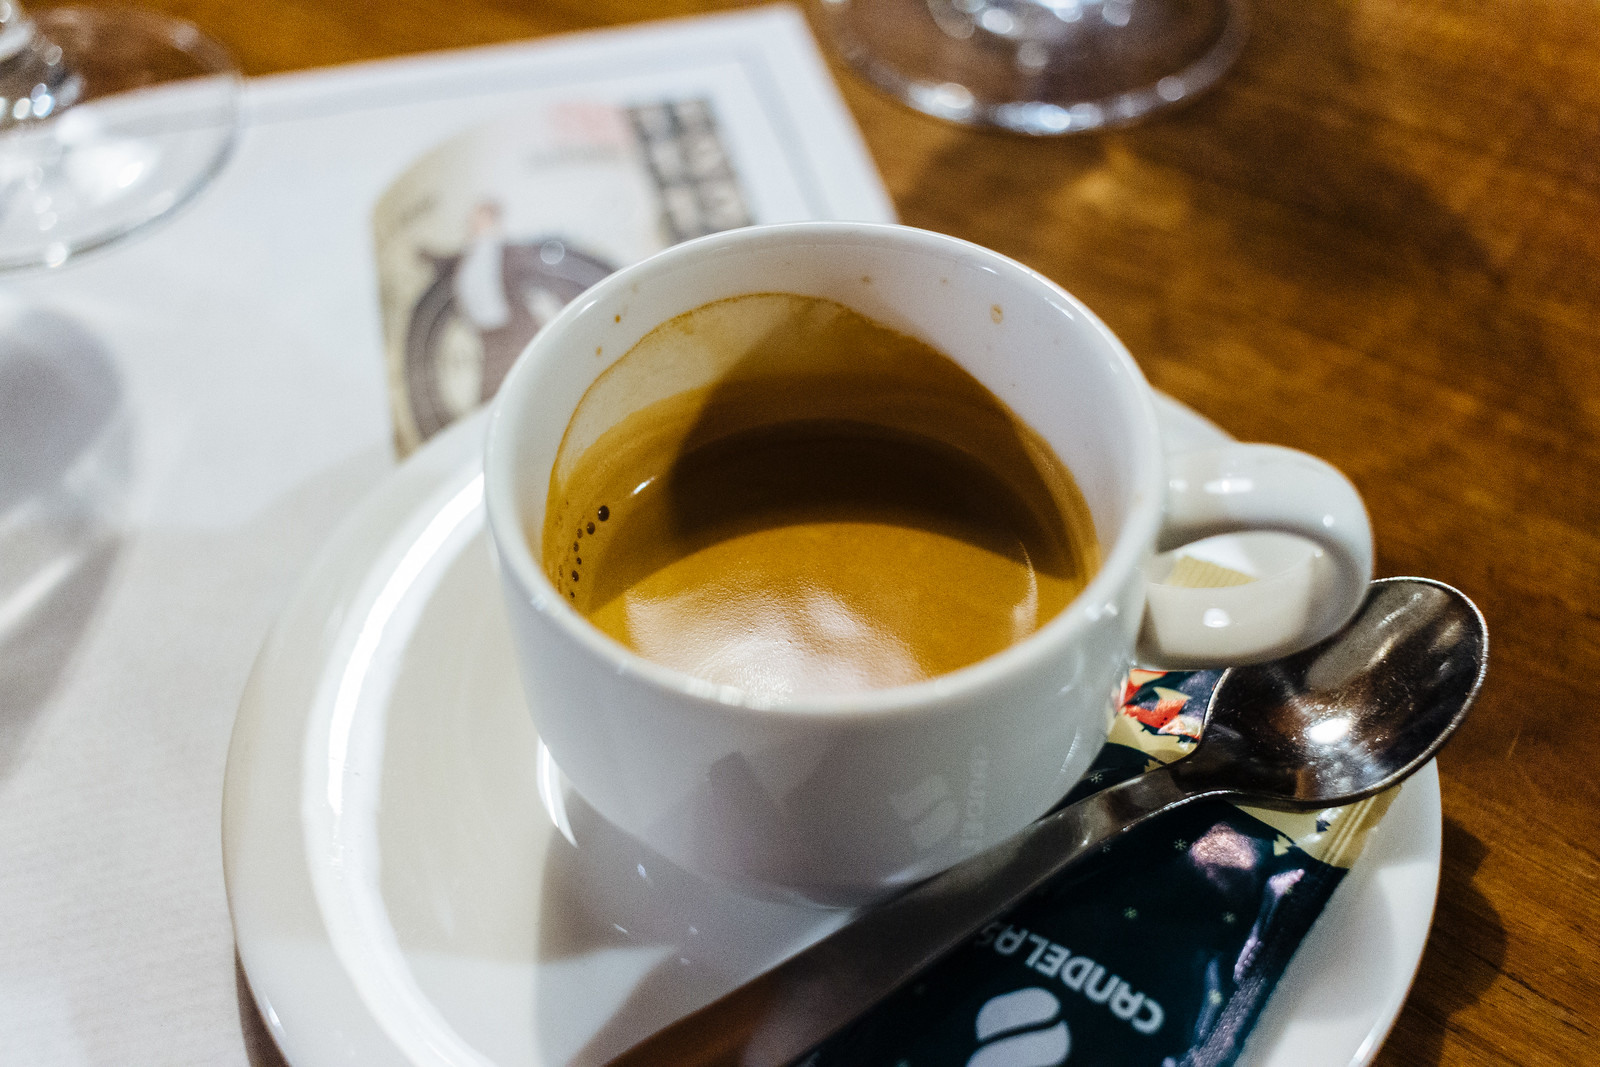 Shot of espresso in a white ceramic cup on saucer with spoon and sugar